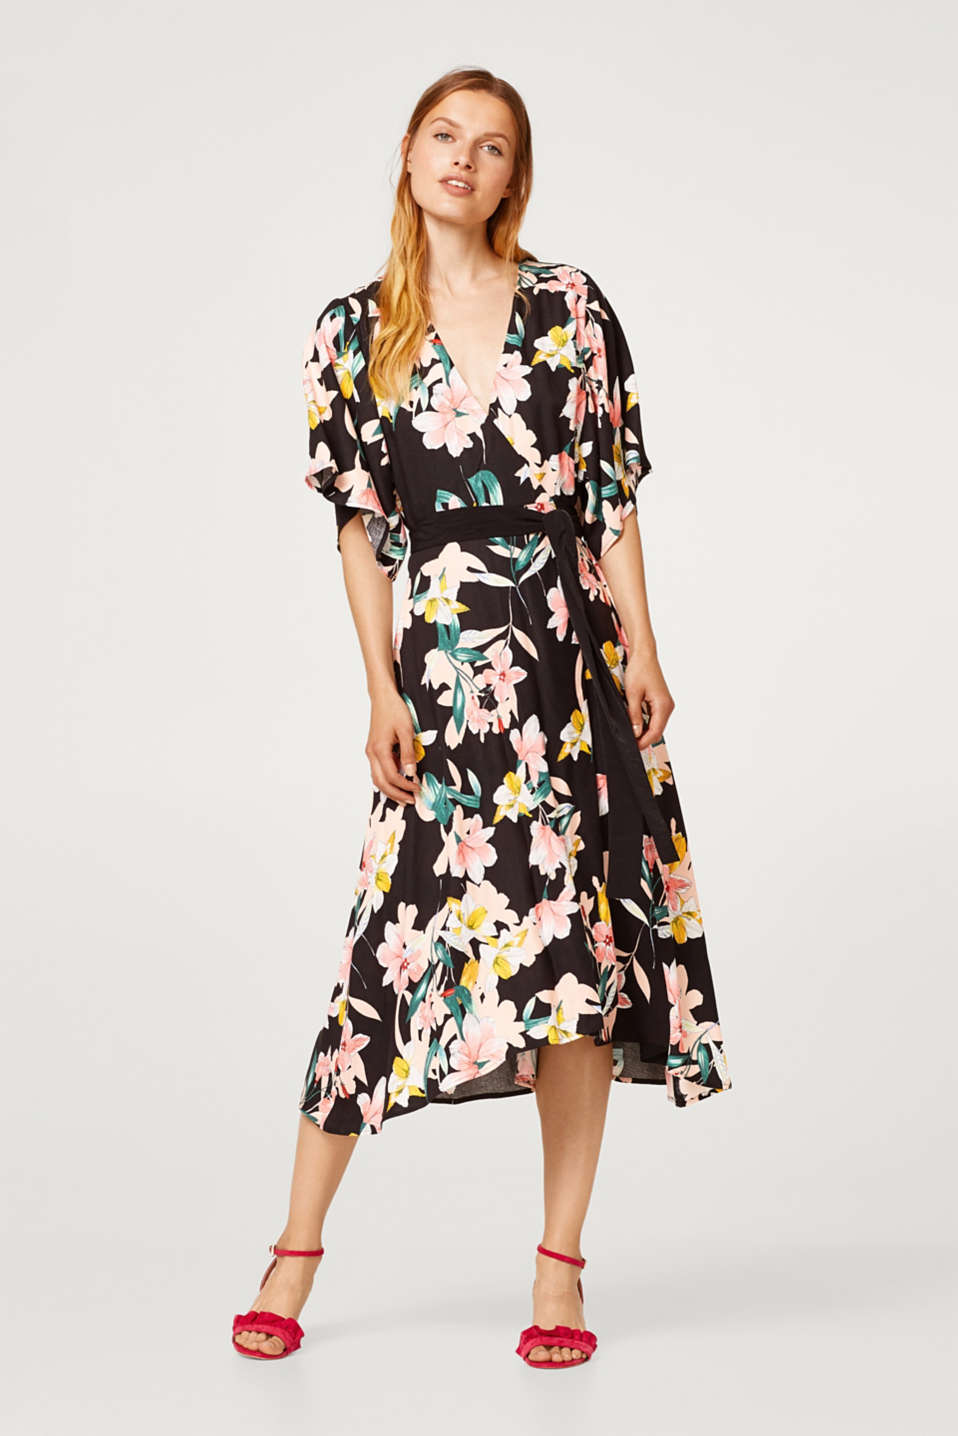 Esprit - Wrap dress made of crêpe with a floral print and belt